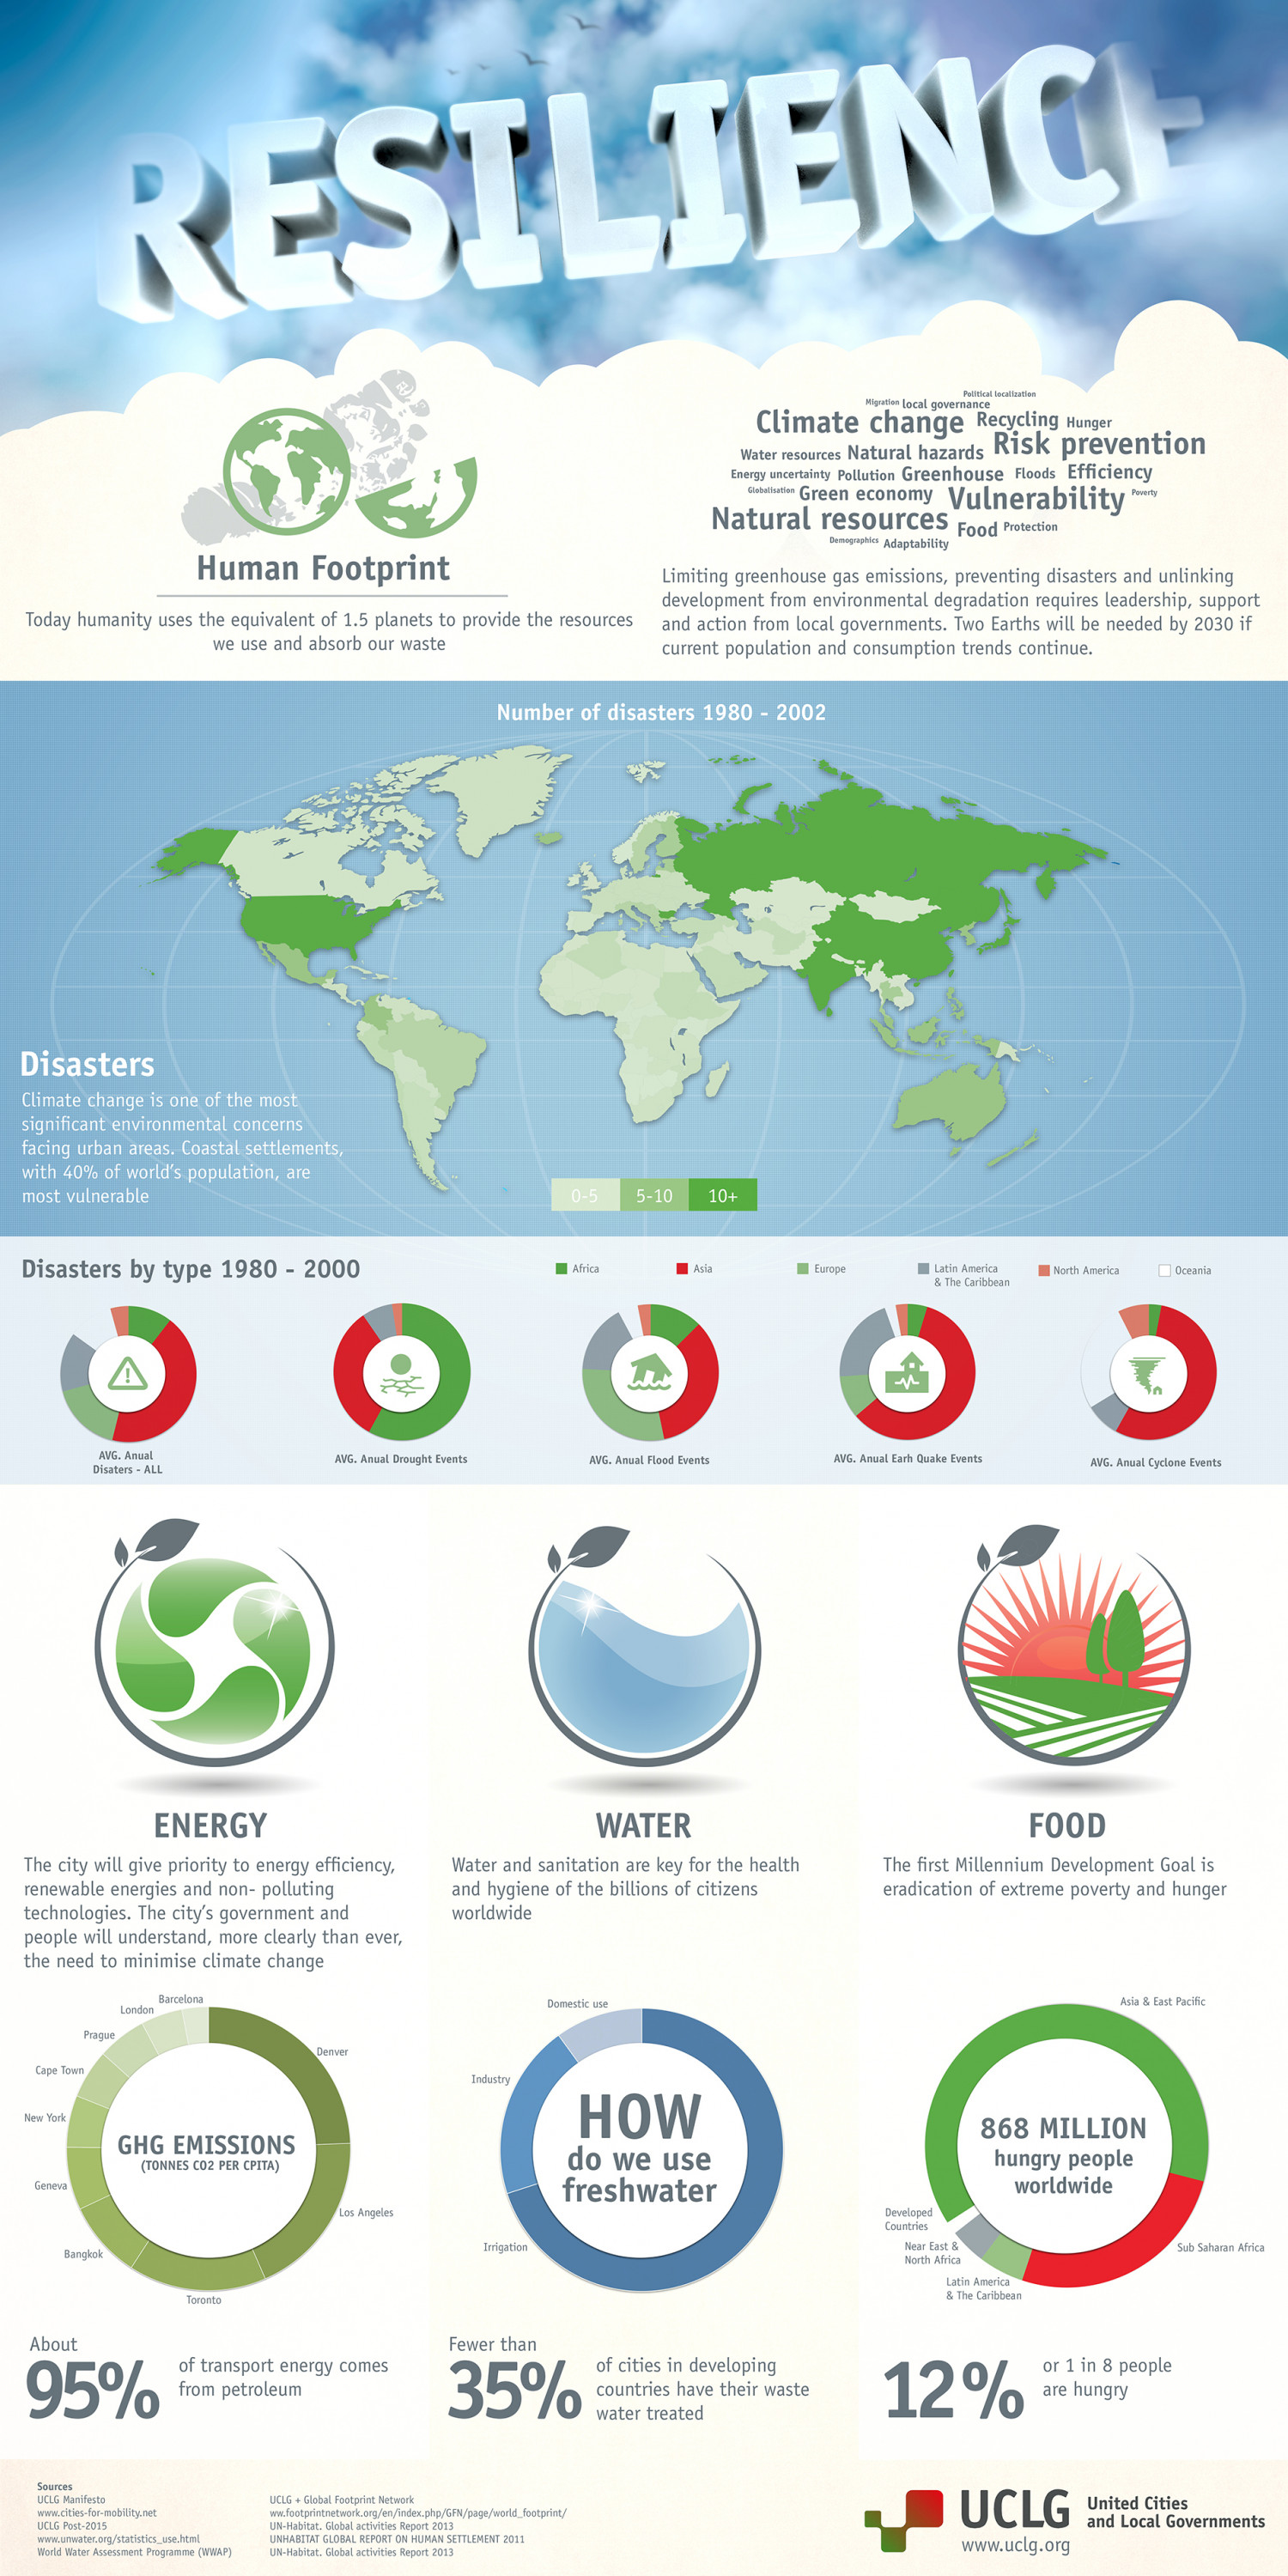 Climate Change - The City of 2030 Infographic